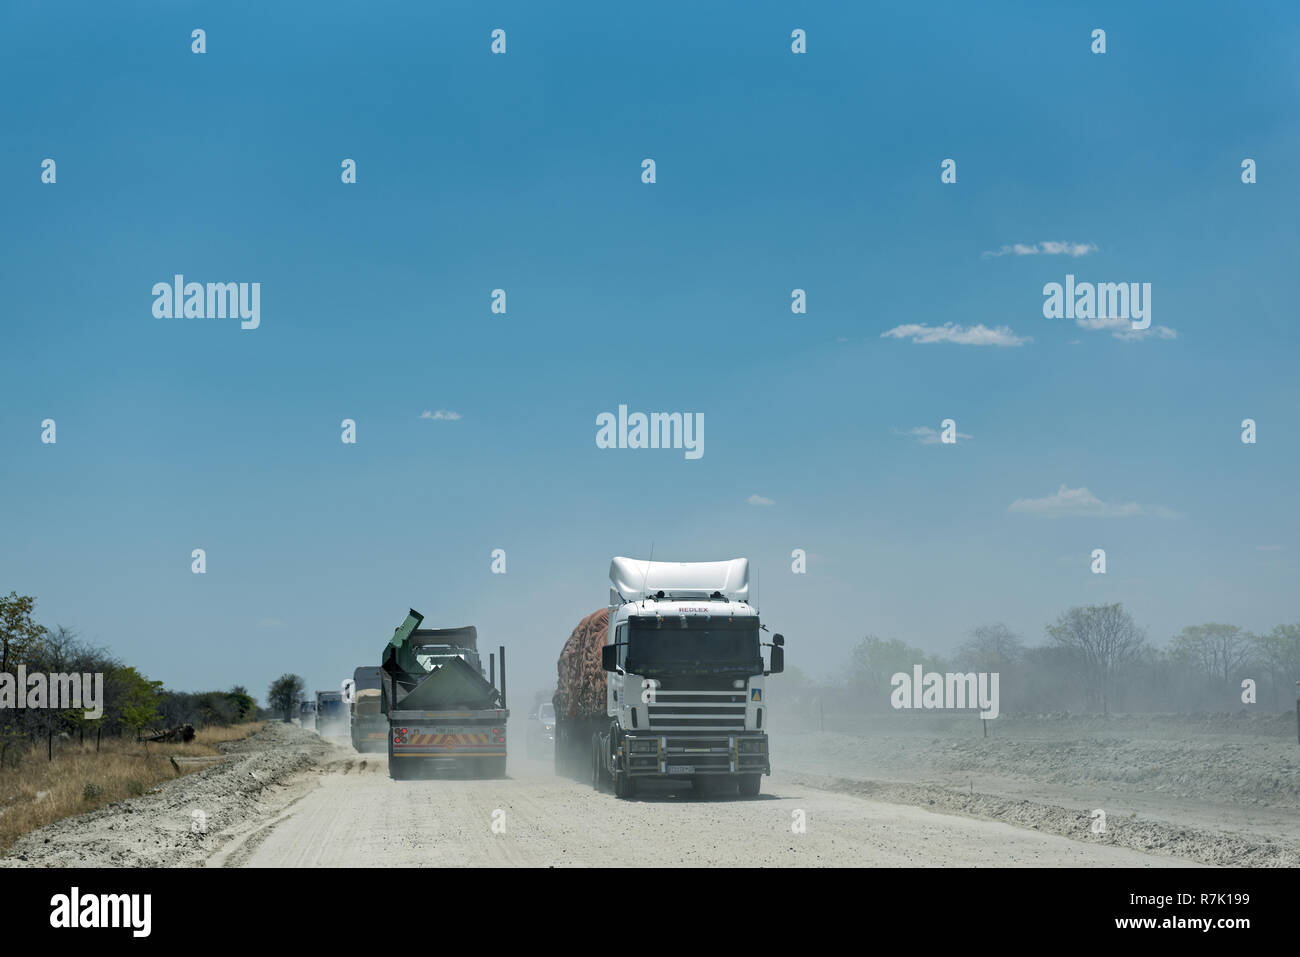 Truck on a dirt gravel road in Botswana - Stock Image